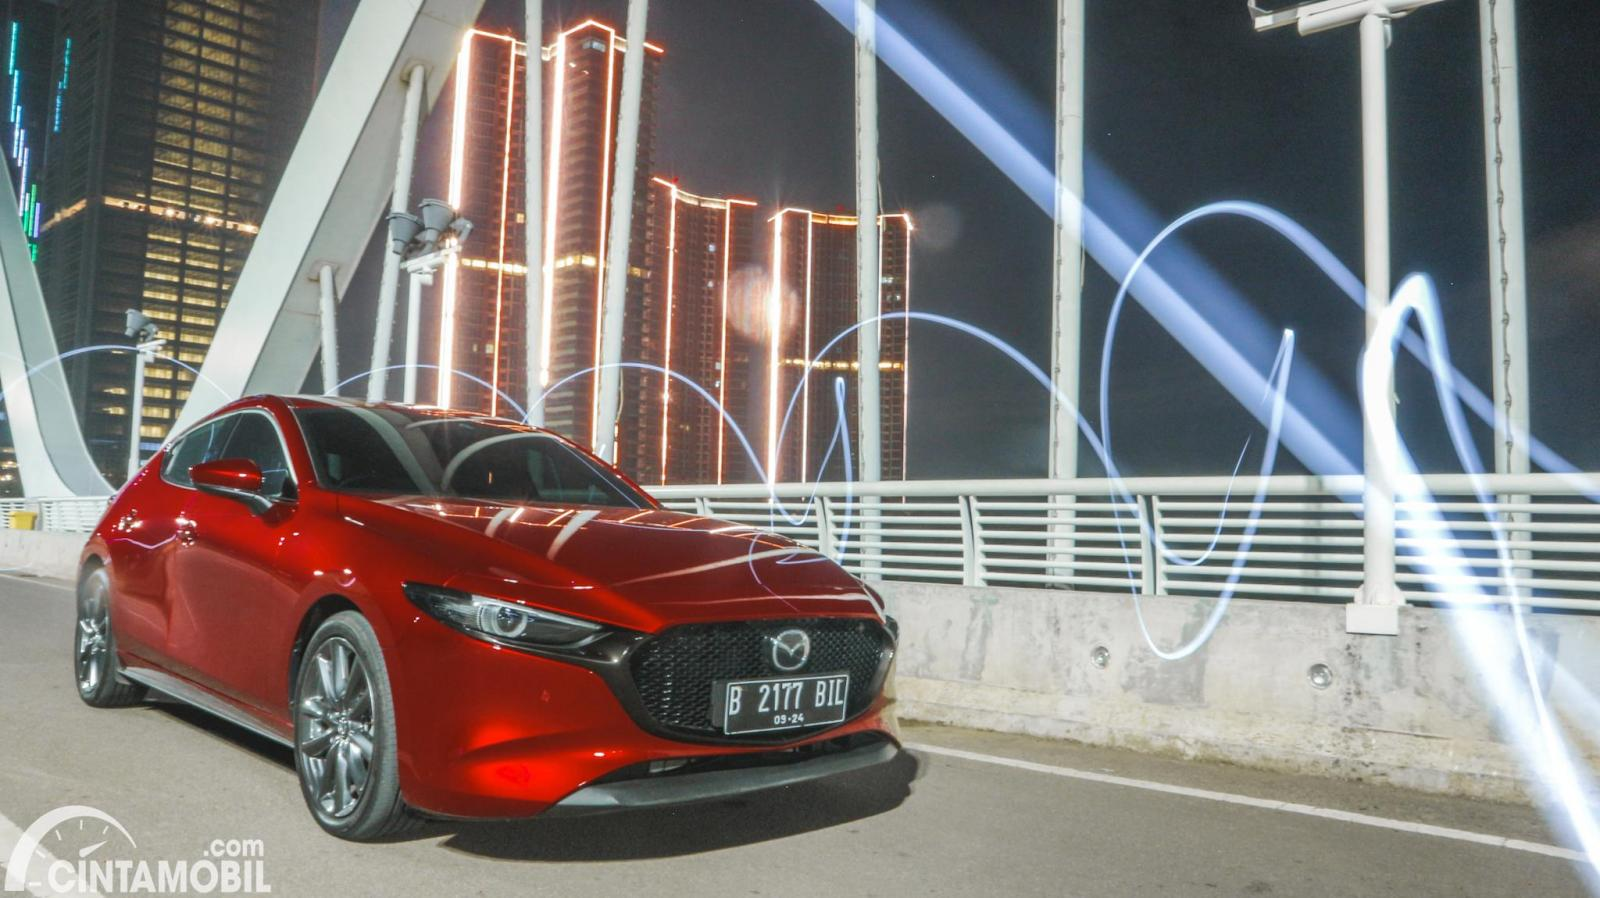 Foto Mazda 3 Hatchback 2019 berwarna Soul Red Metallic